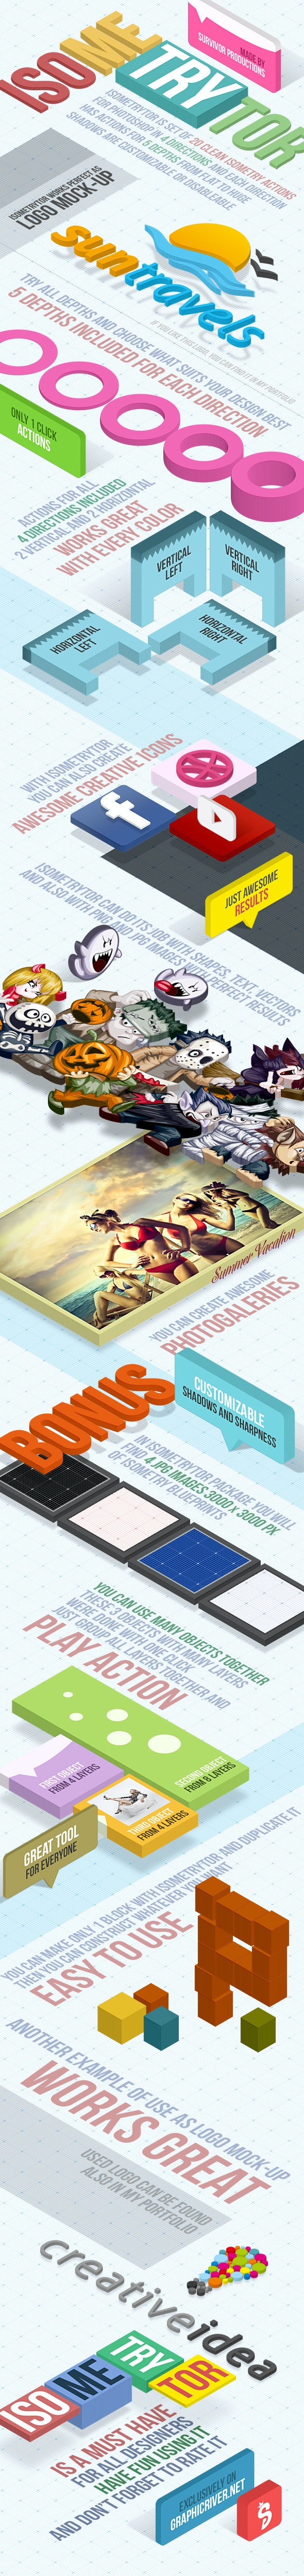 Isometry 3D Actions - Actions Photoshop